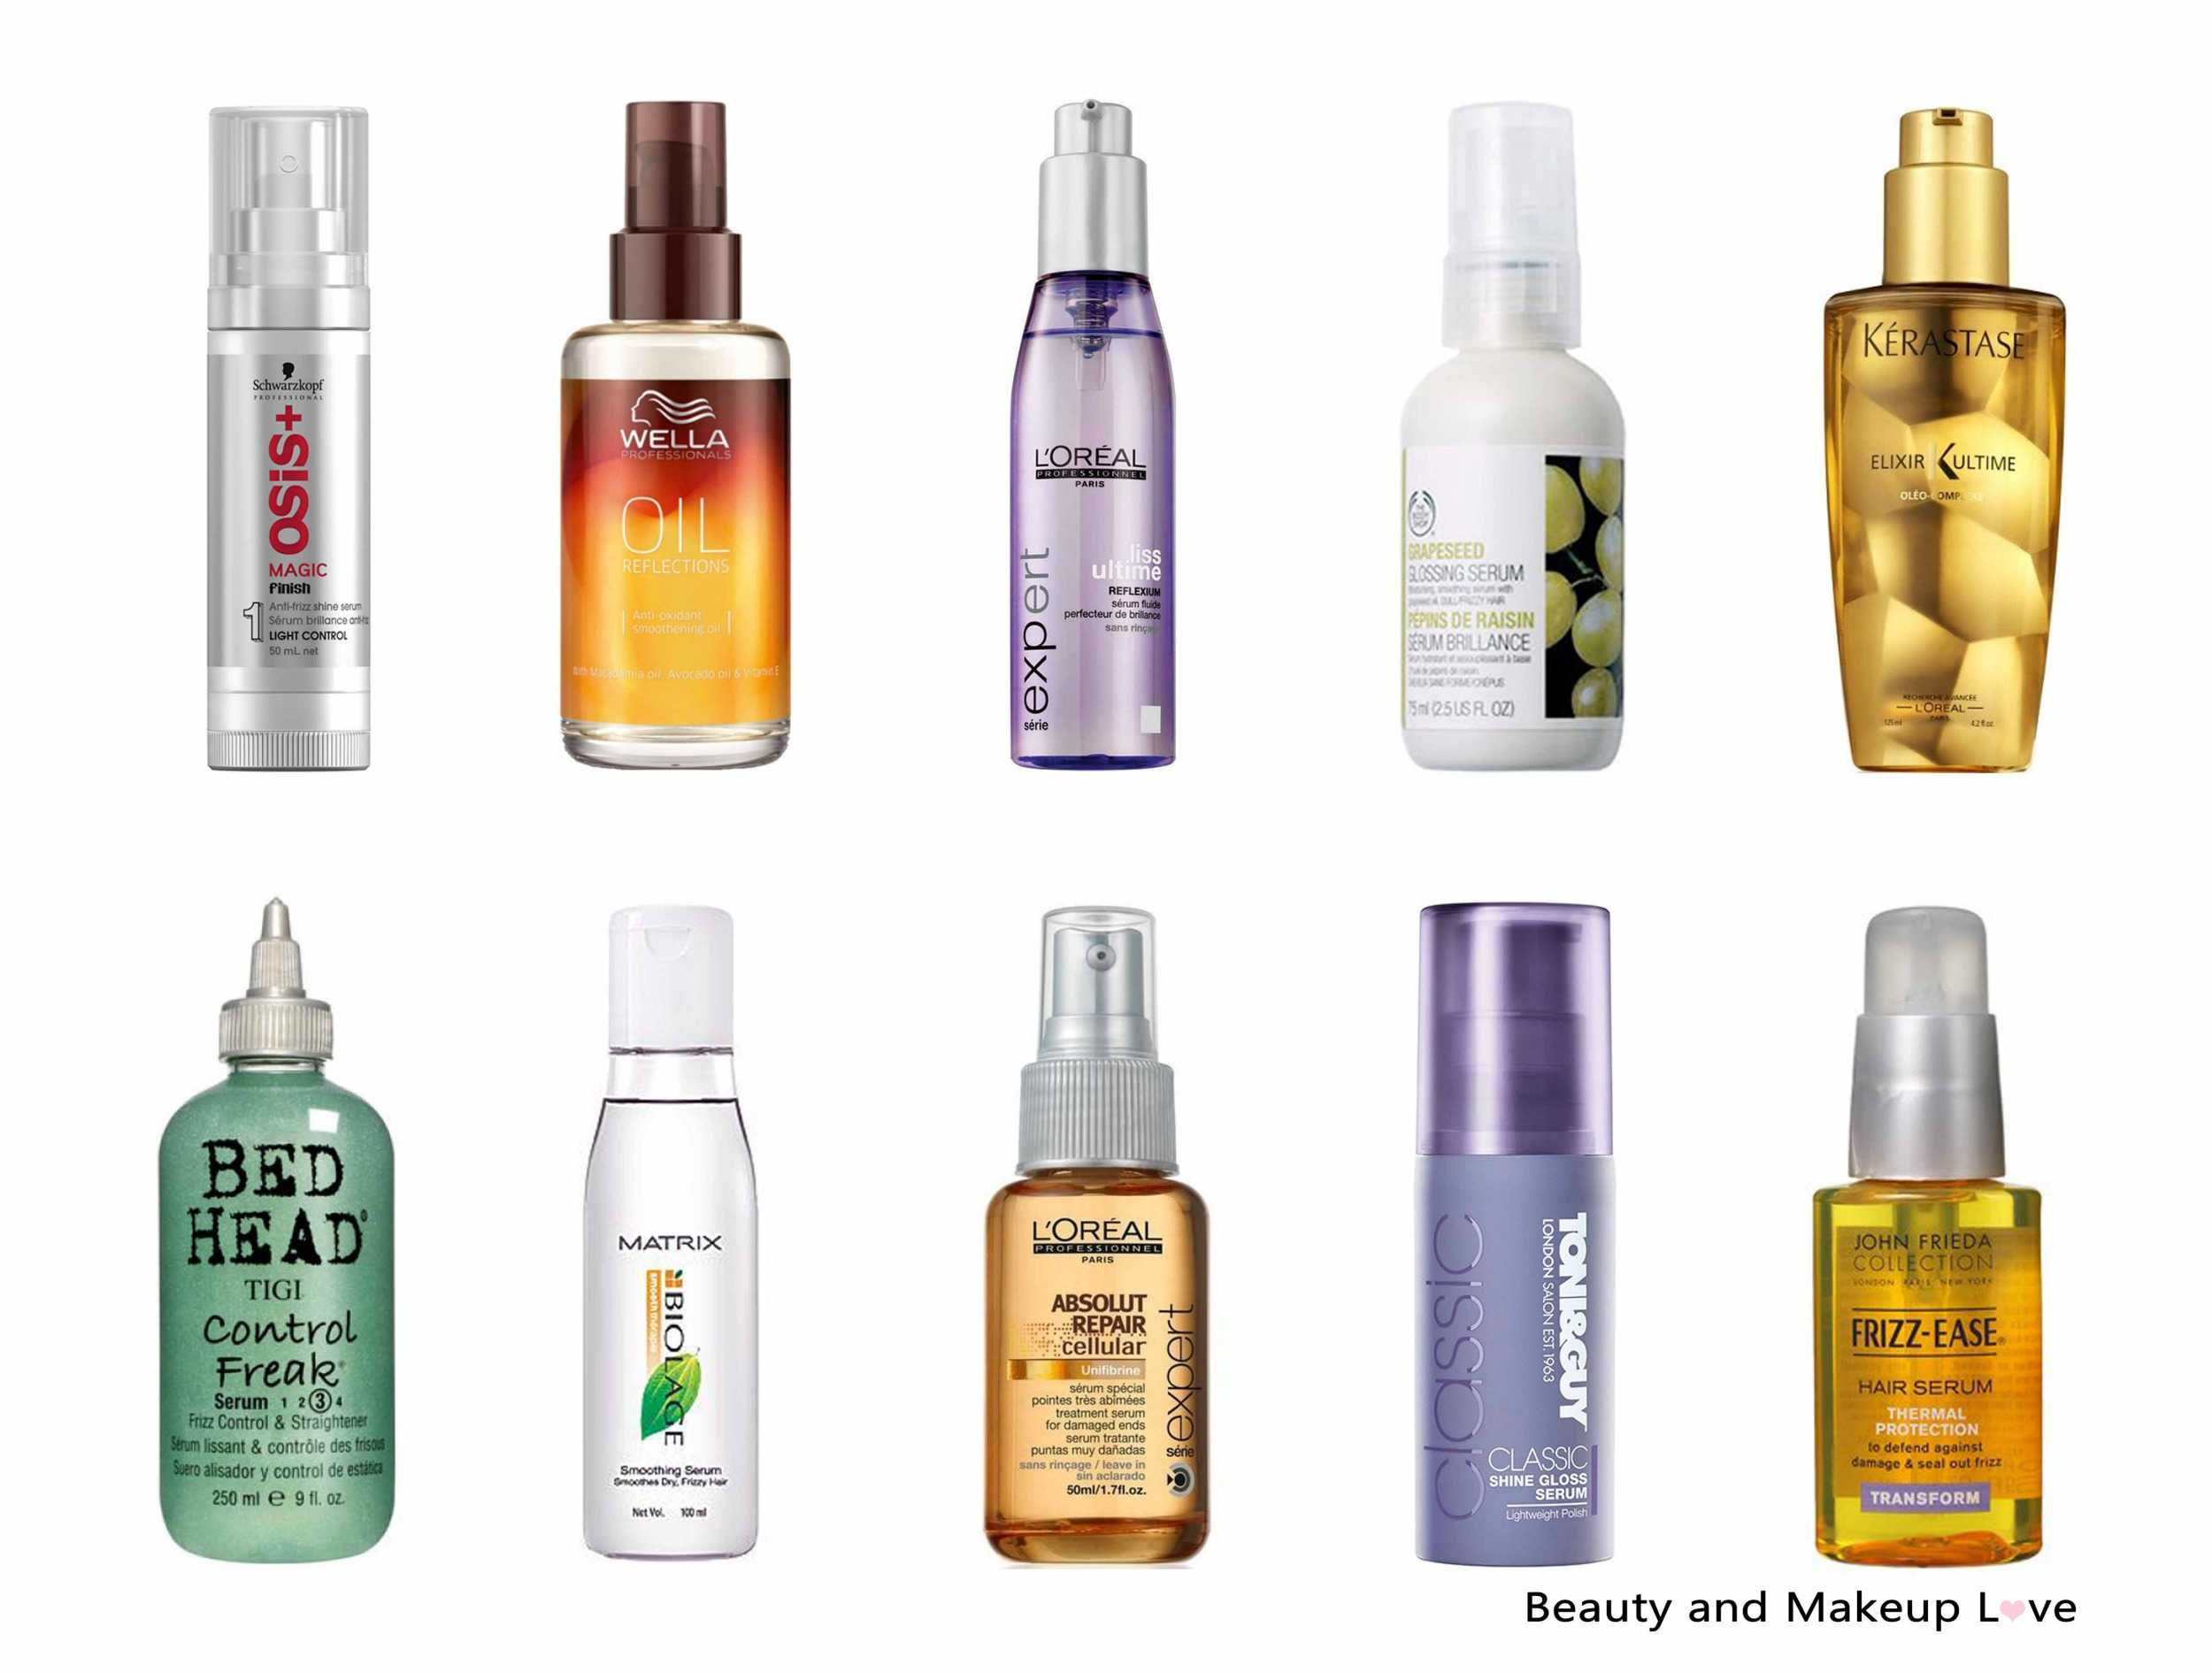 Best Serum for Dry, Frizzy Hair in India: Our Top 10!